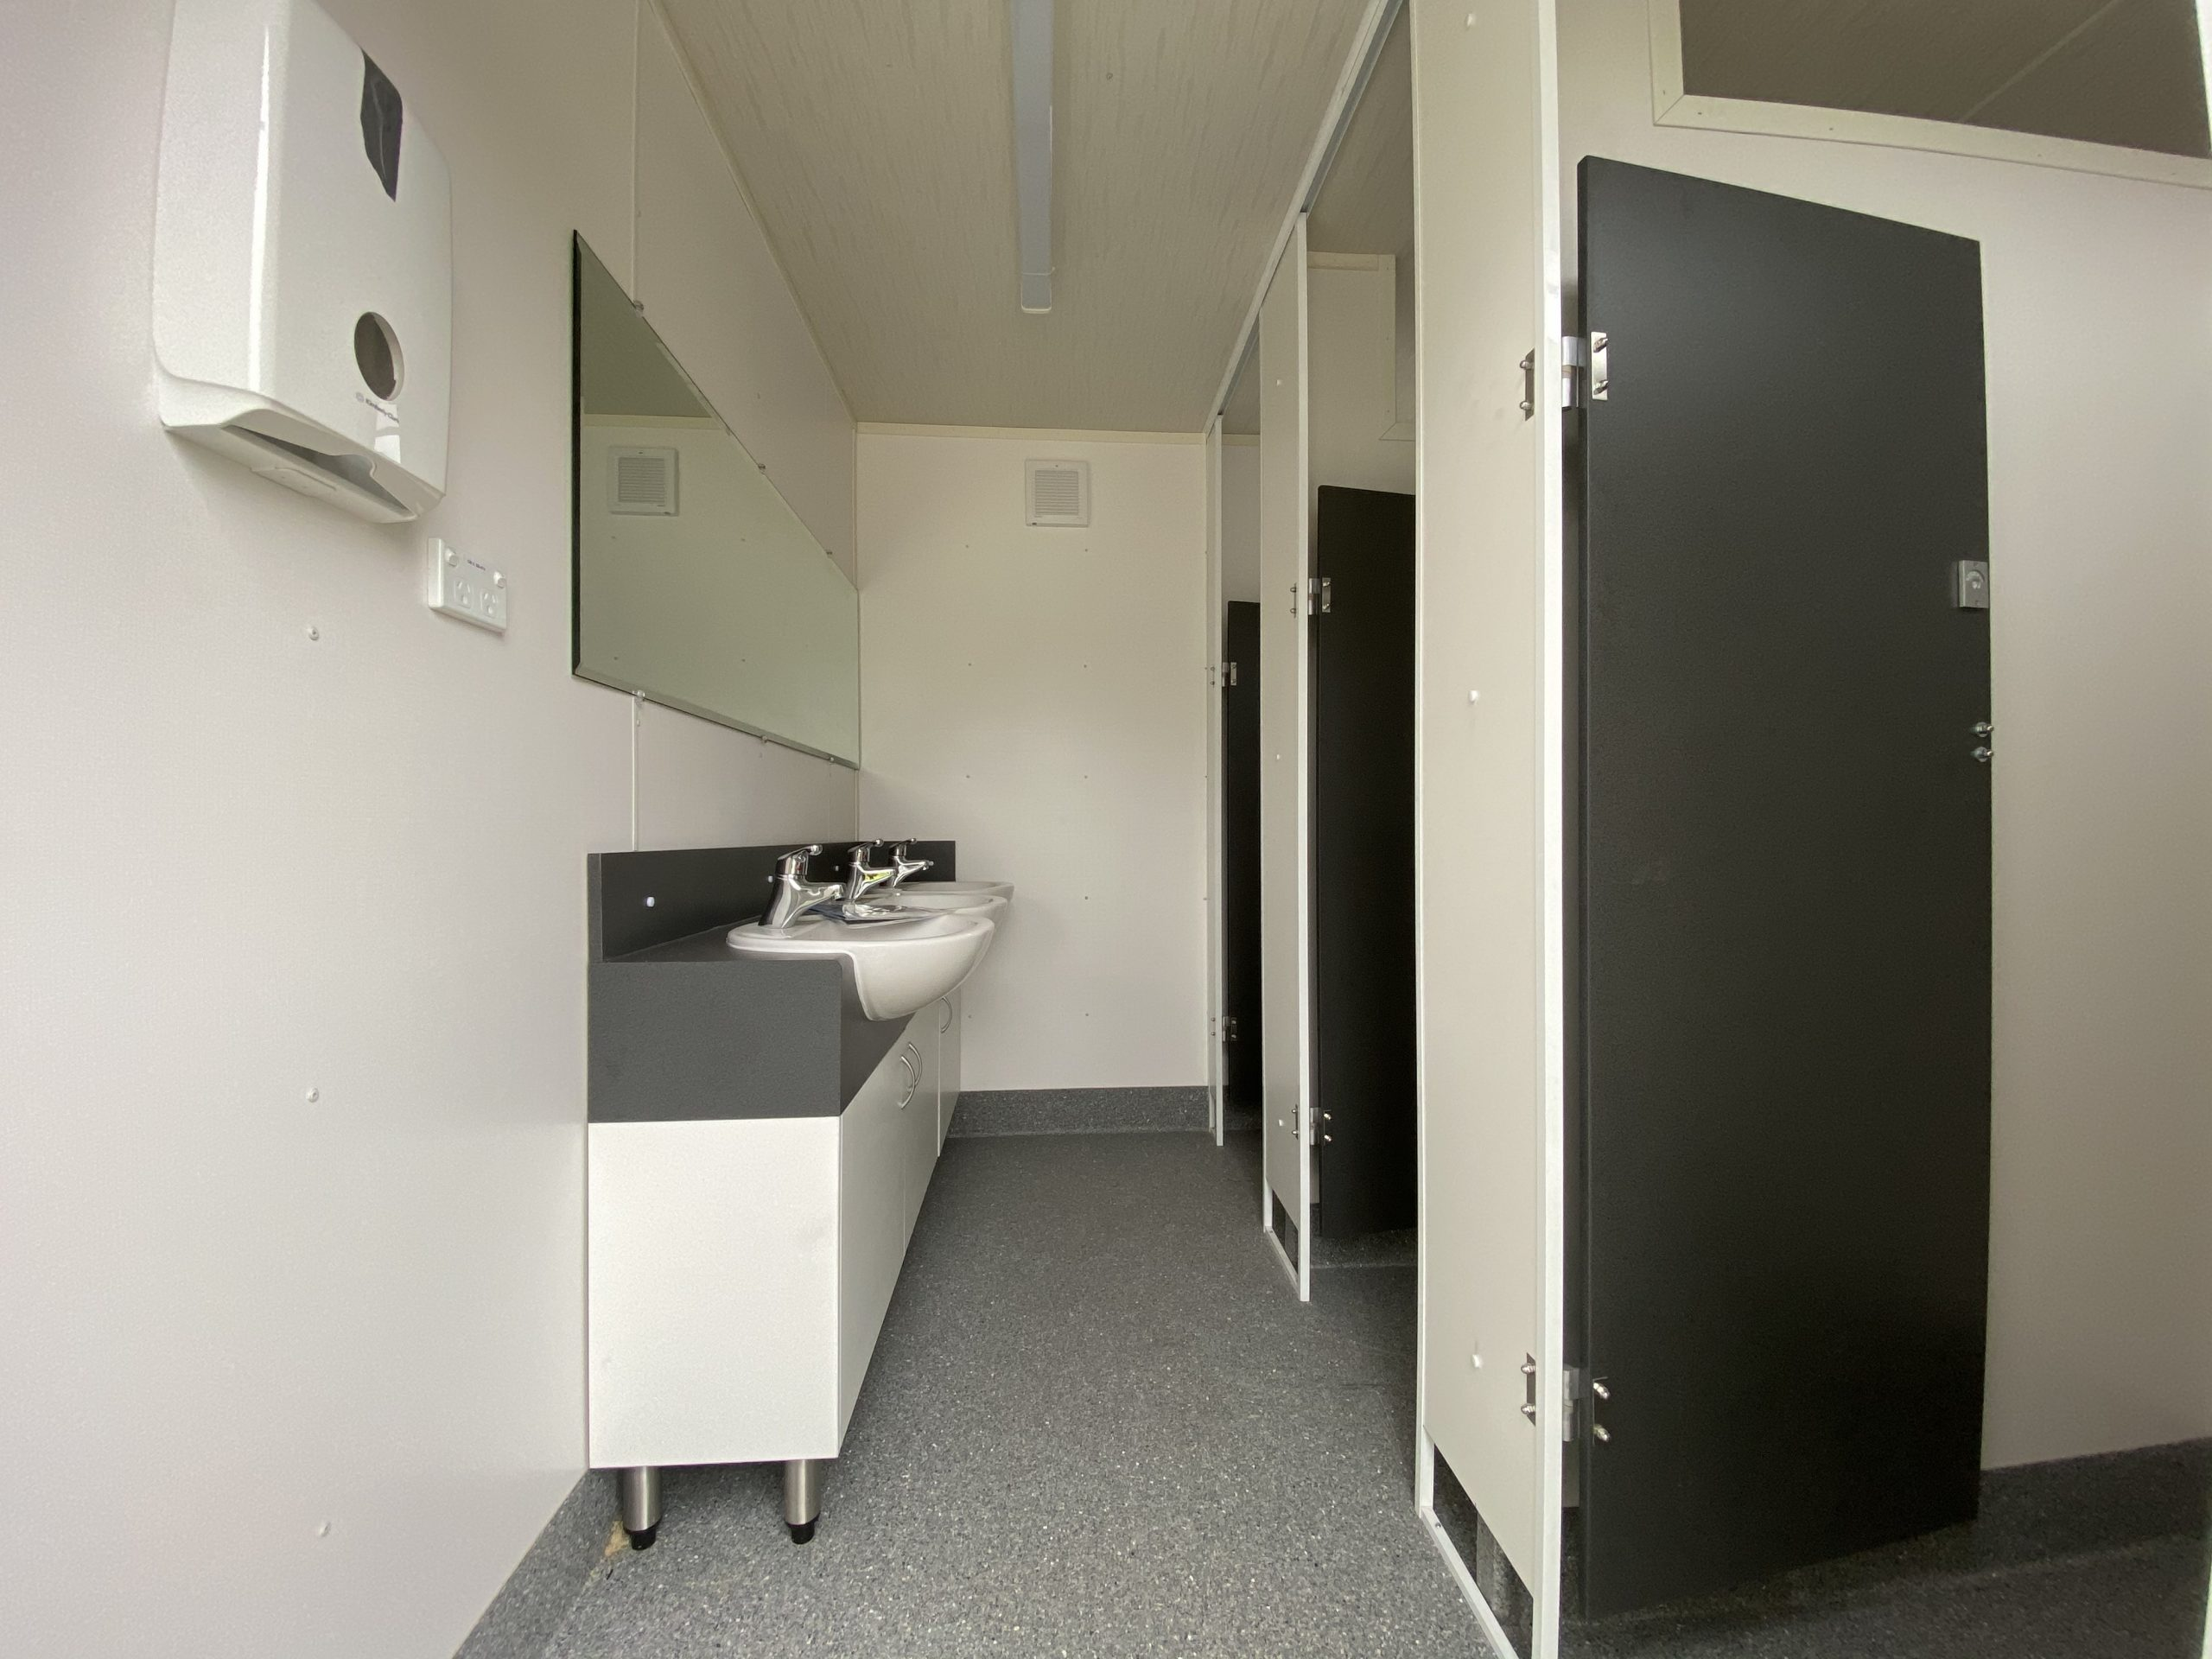 Ablution block with sinks